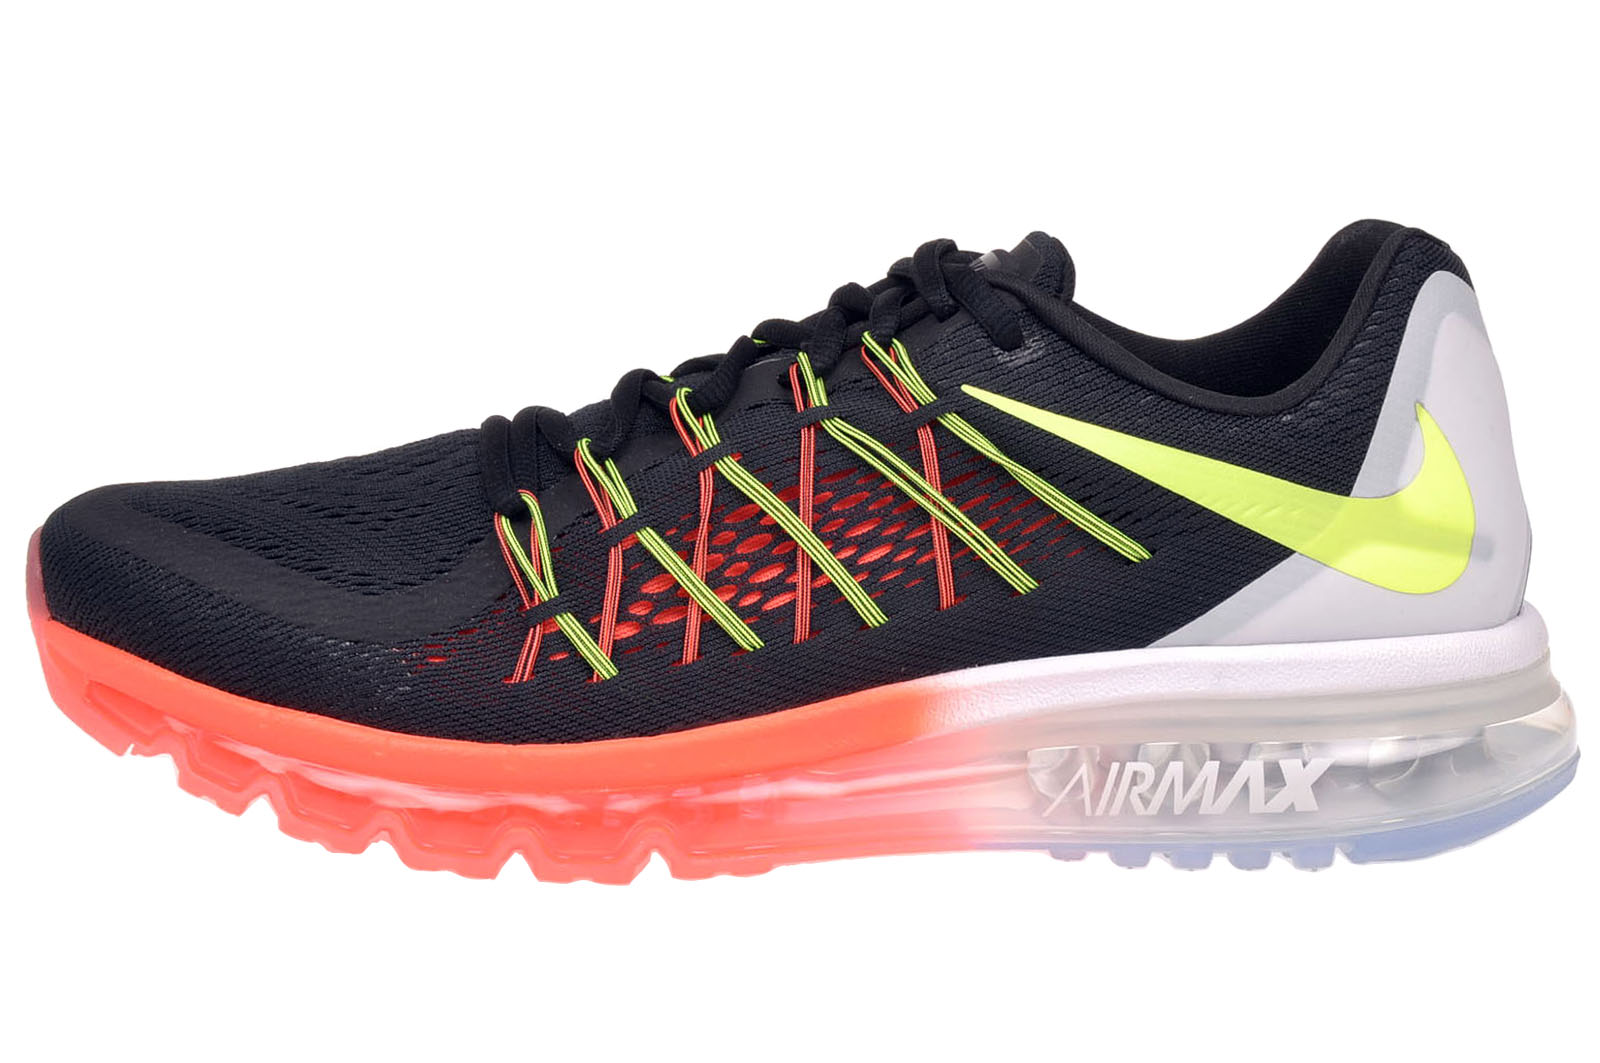 newest 24f98 2bc23 ... Nike Air Max 2015 Price Philippines ...